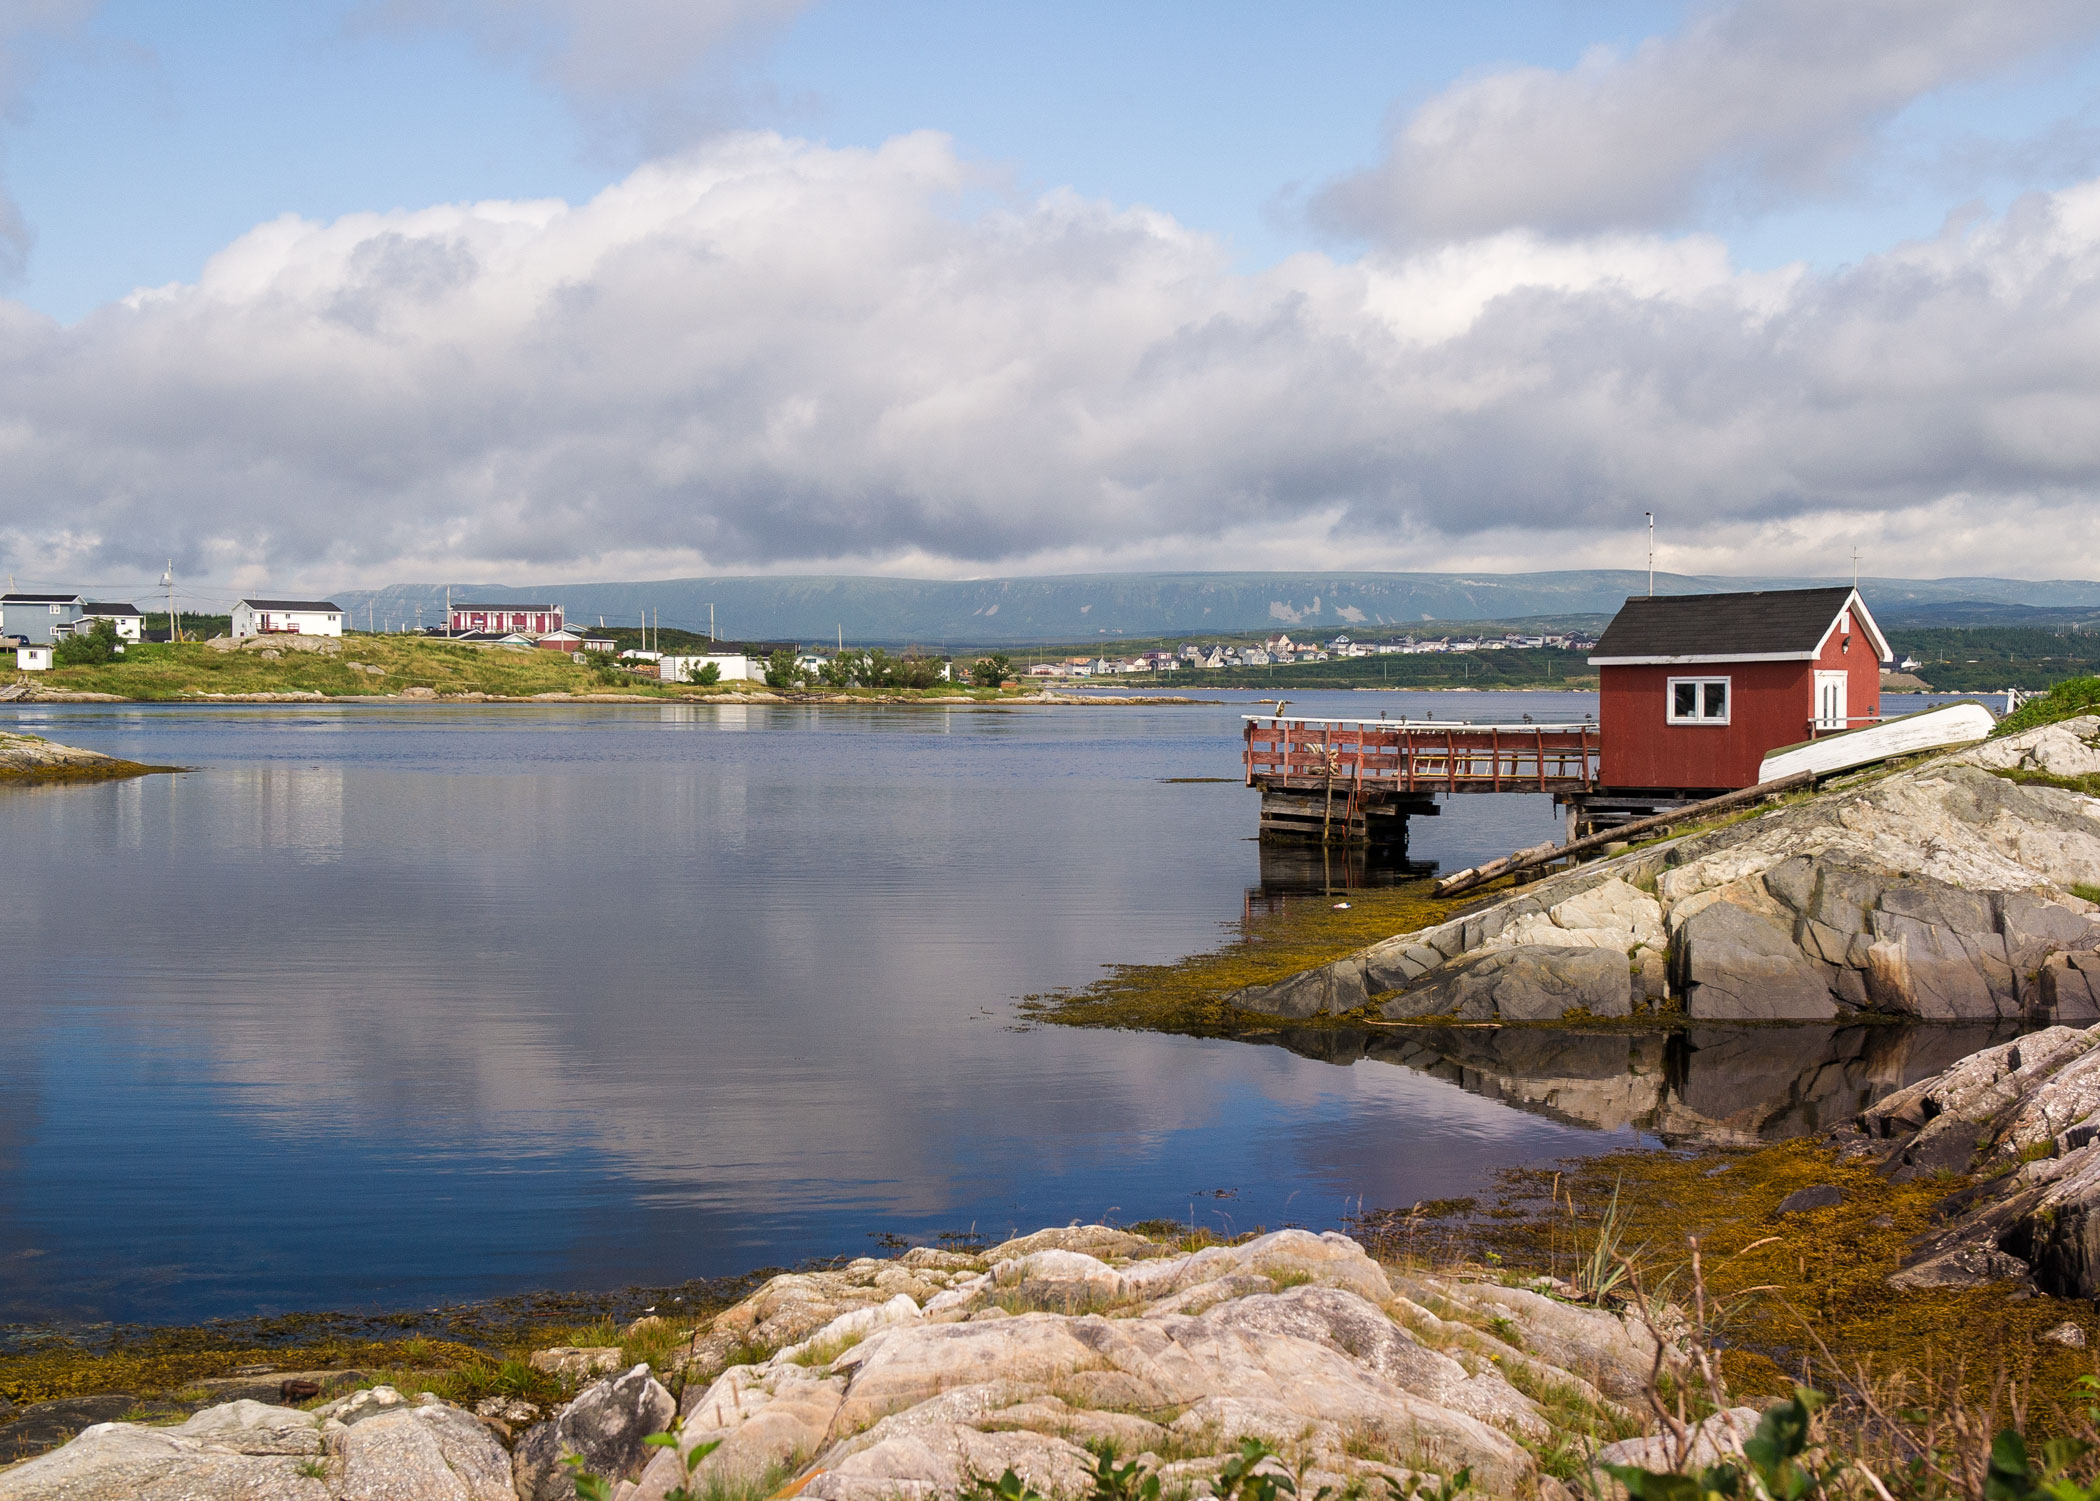 A landscape photo showing a rocky shoreline, houses and a fishing stage